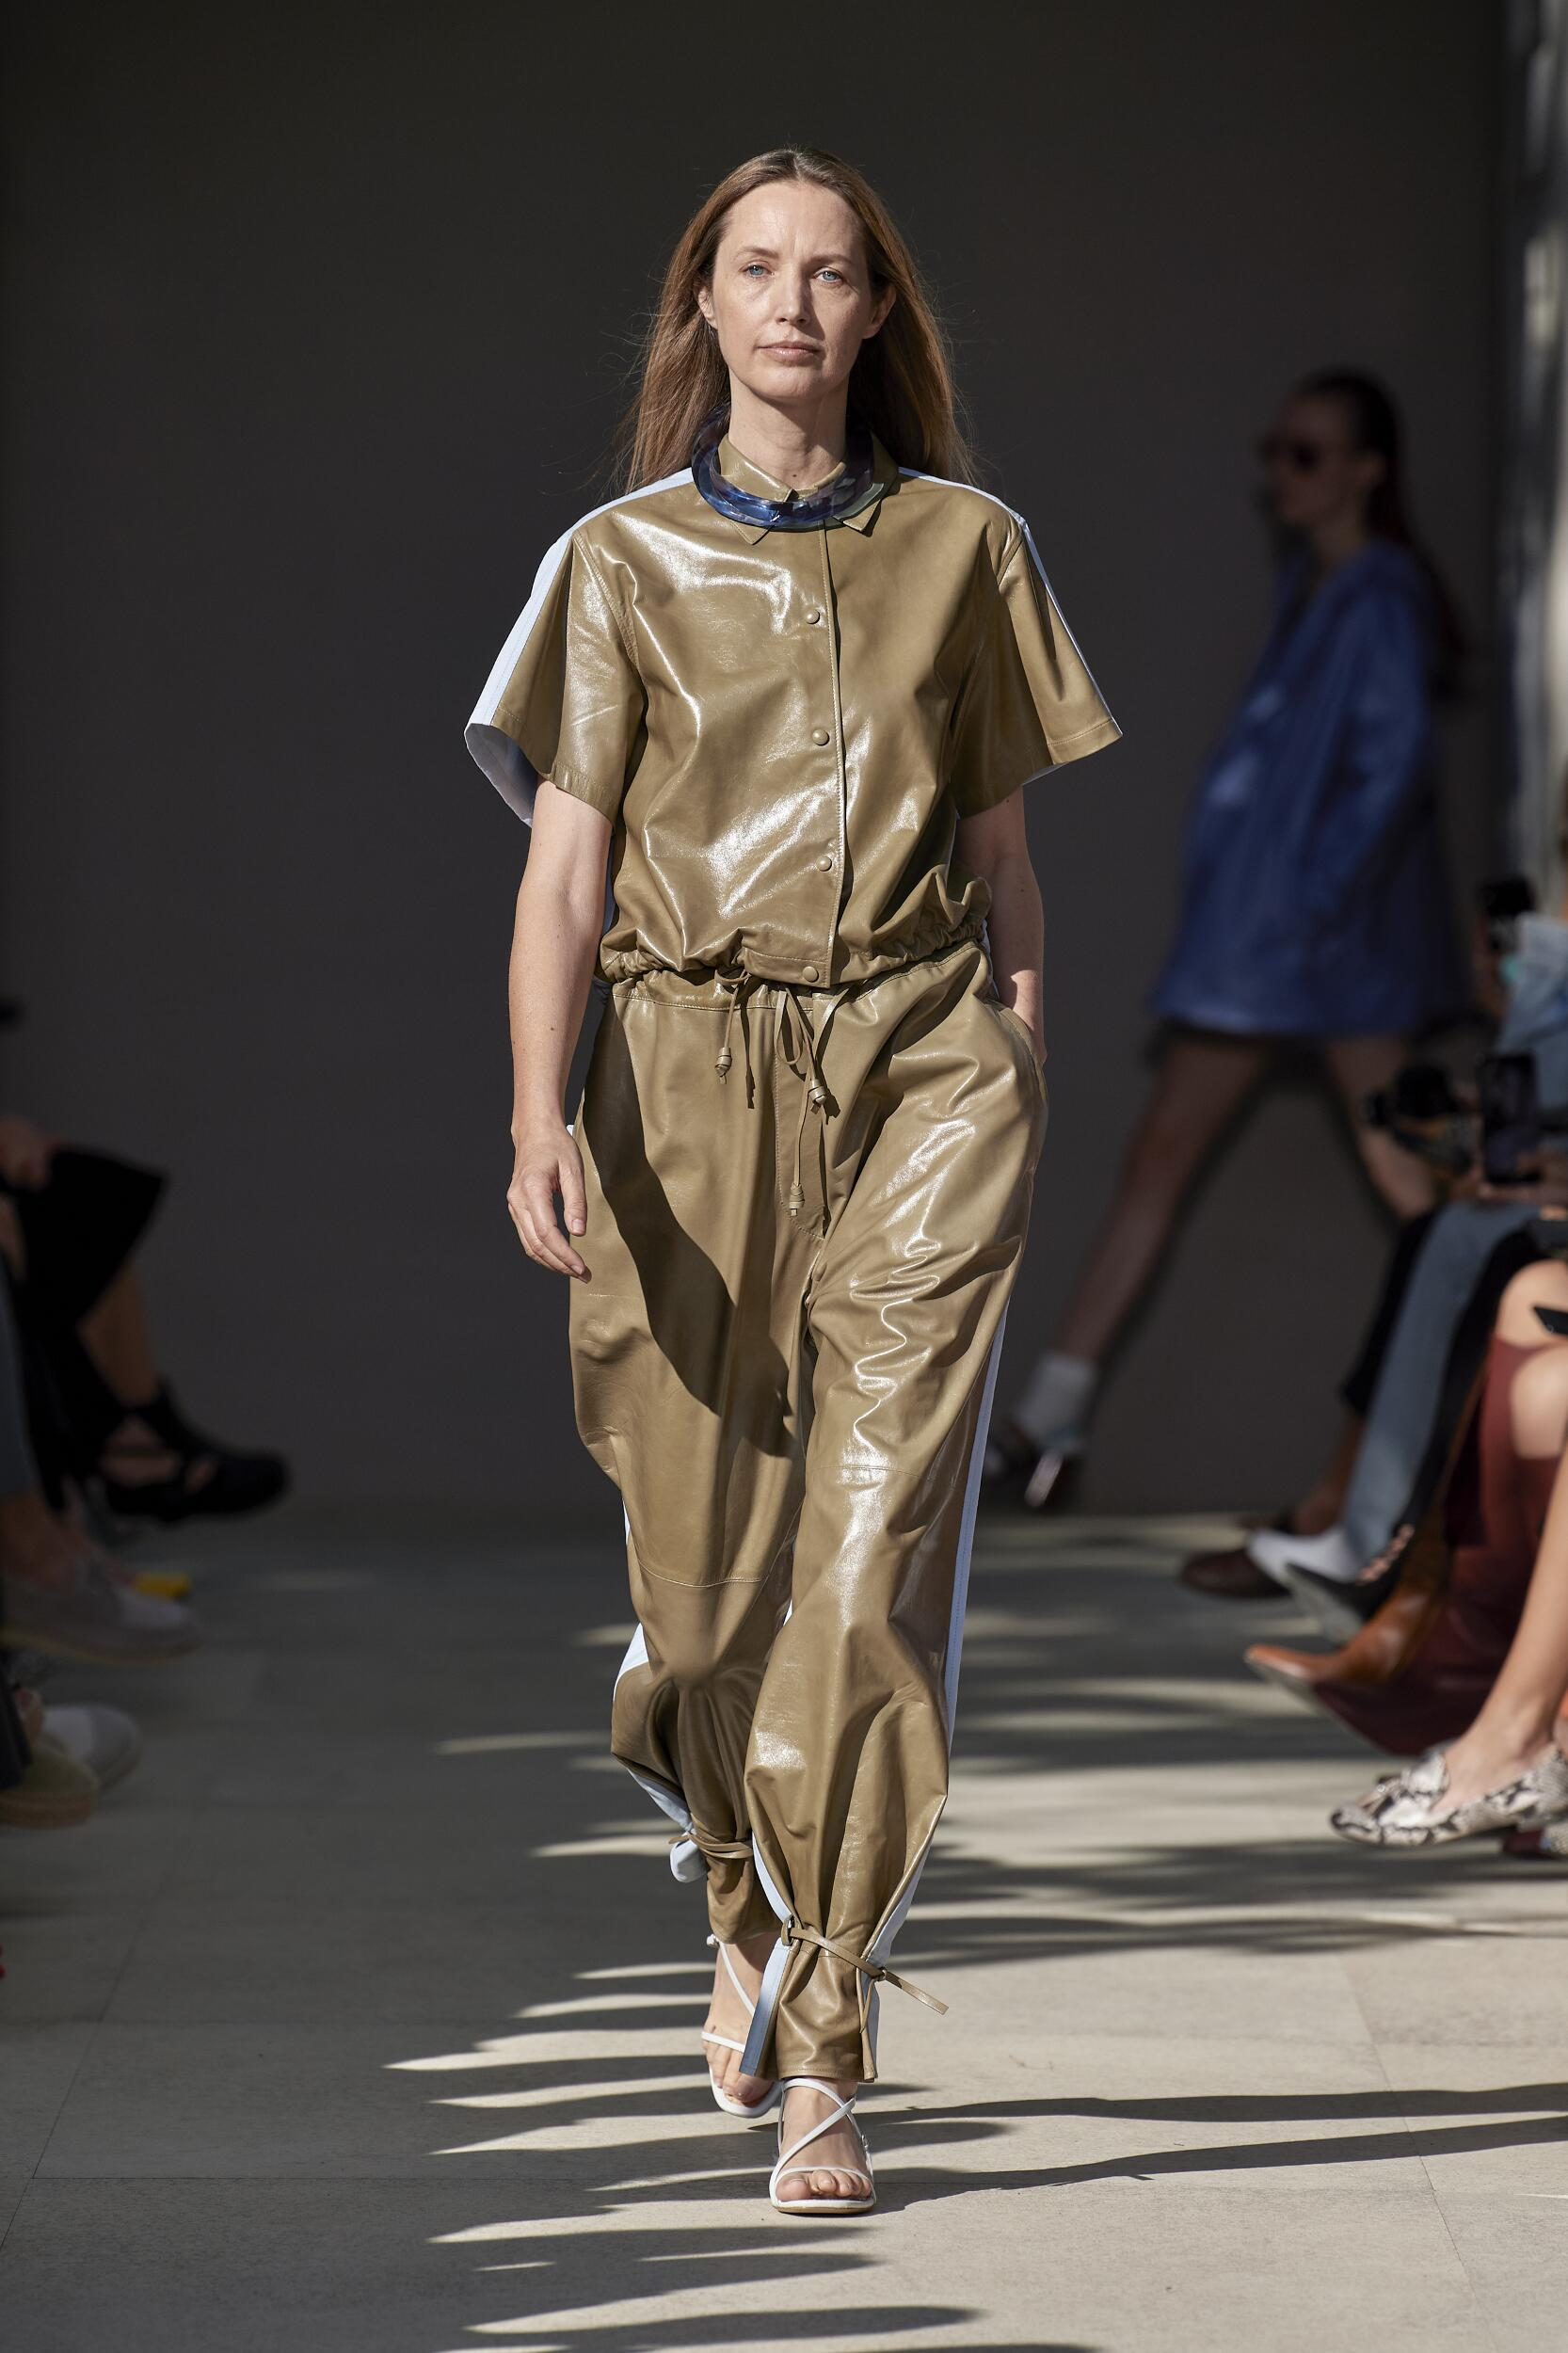 Salvatore Ferragamo Summer 2020 Catwalk